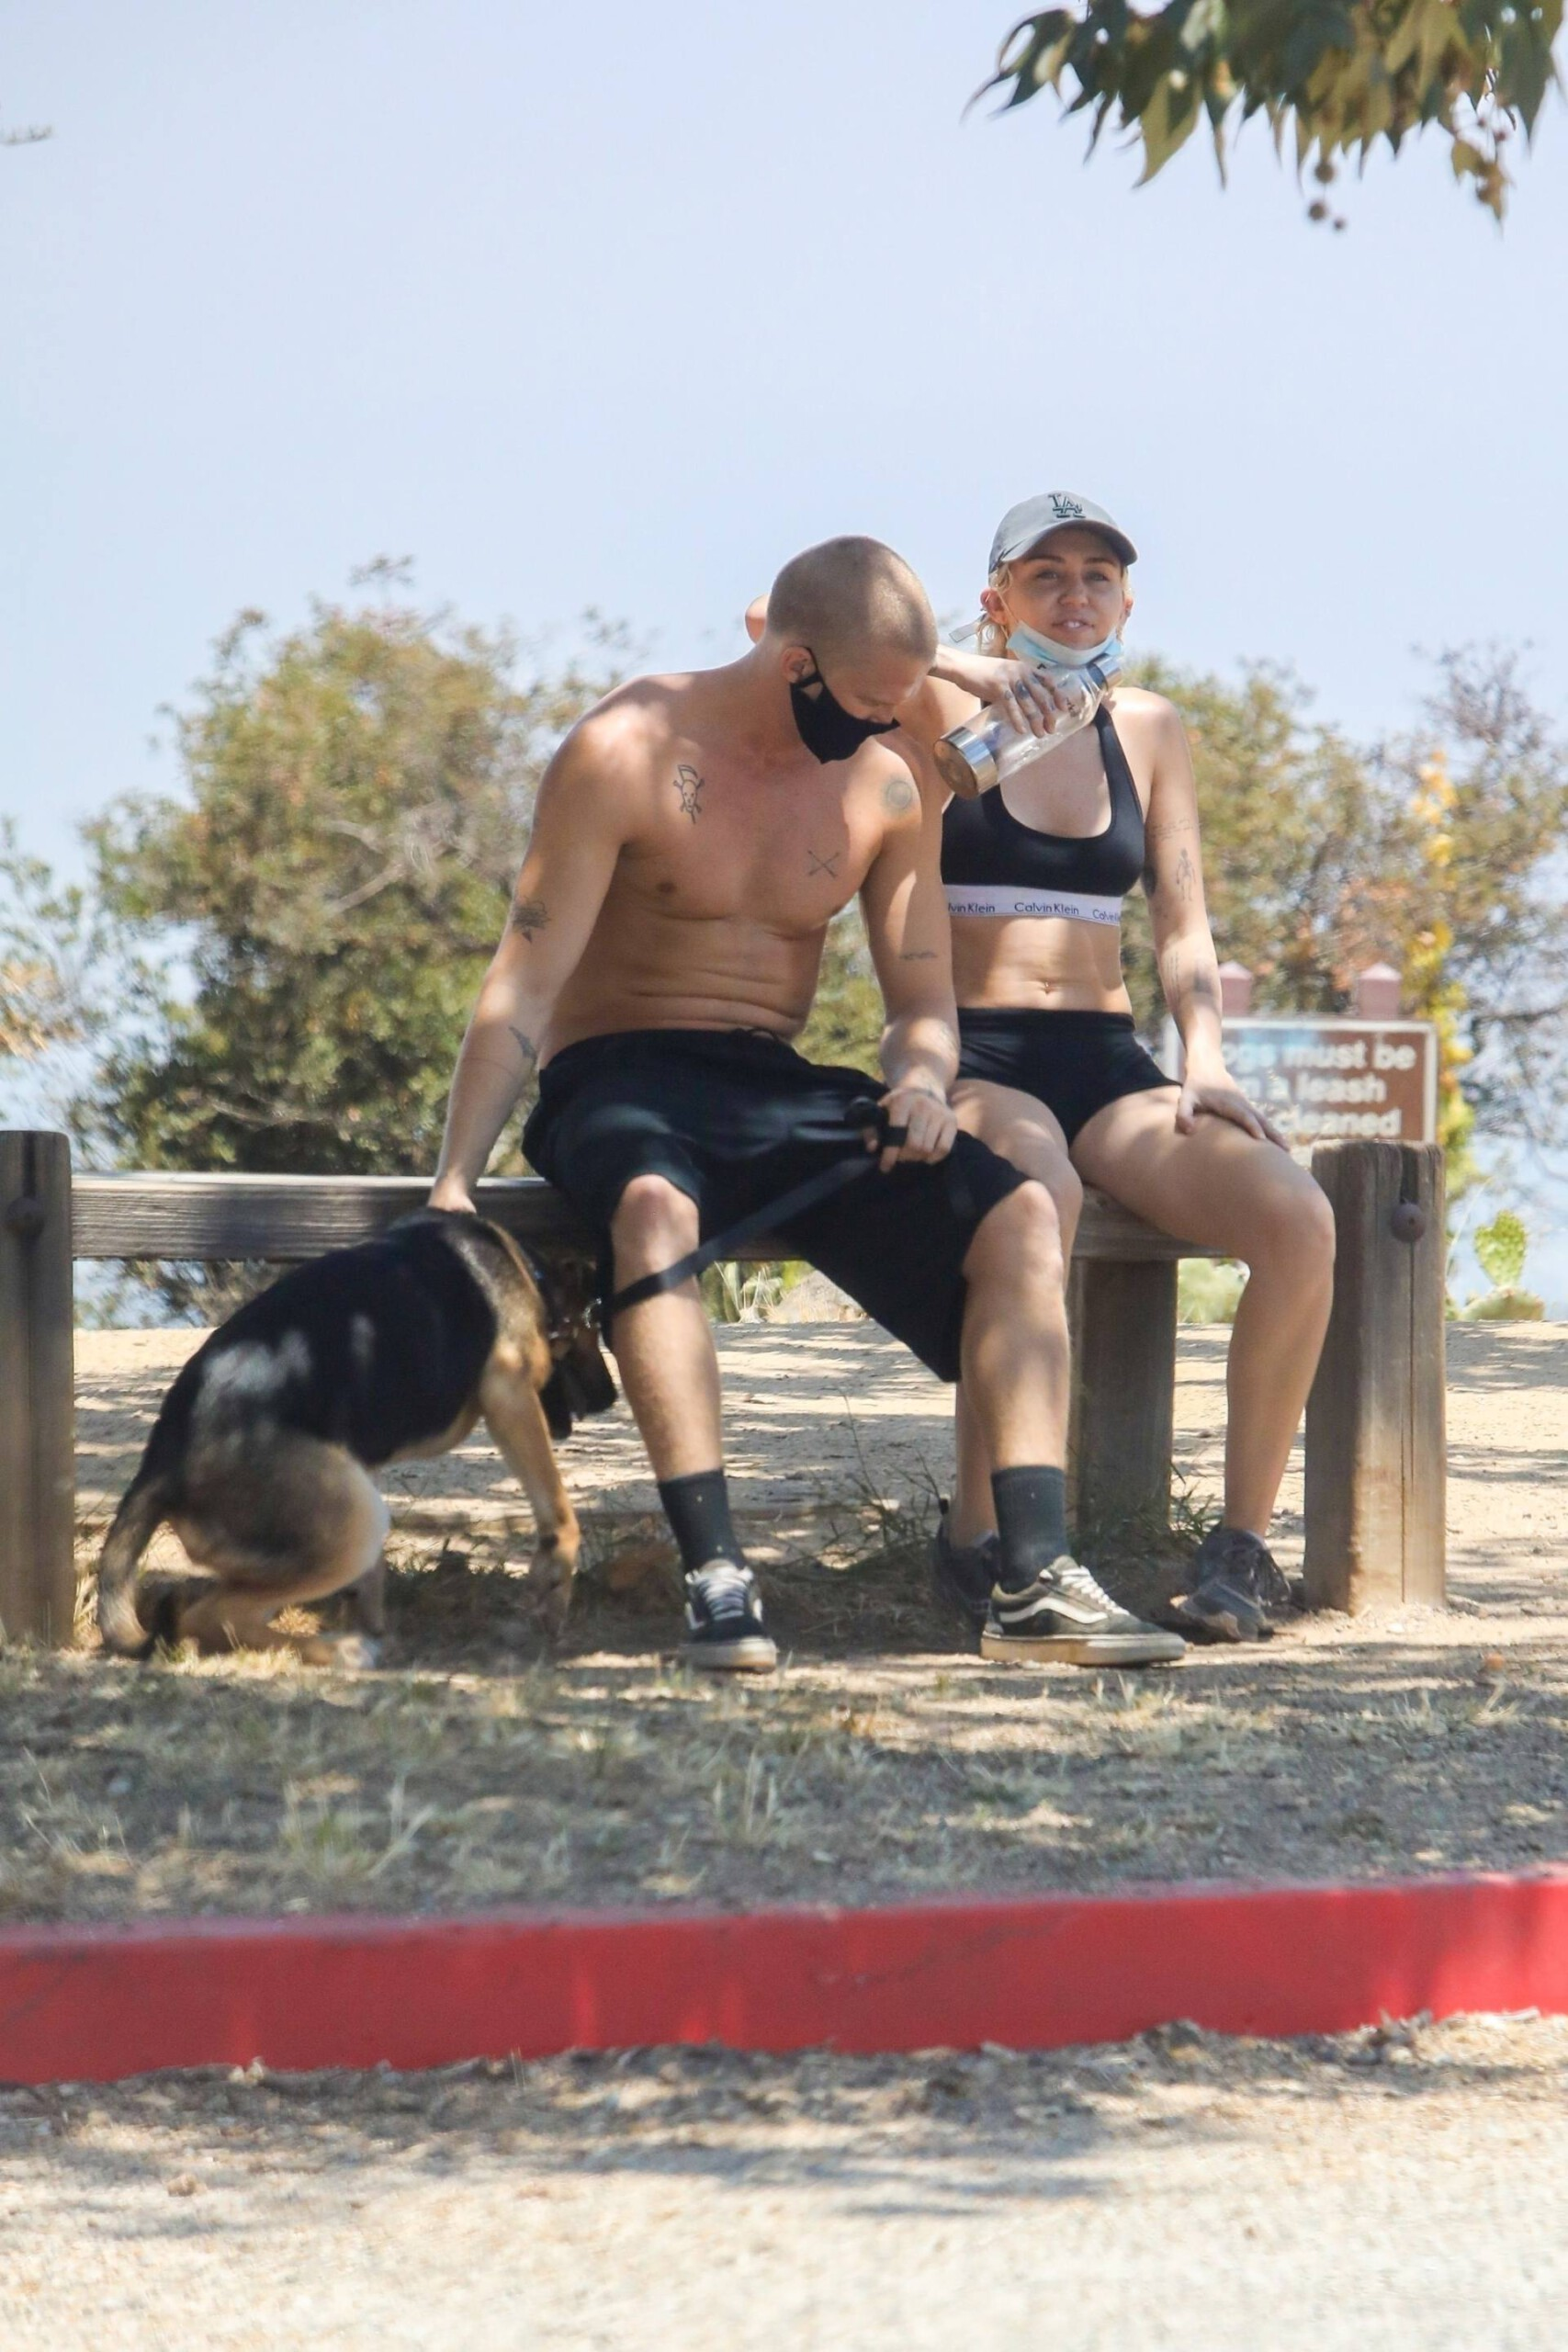 Miley Cyrus – Sexy Fit Body In Shorts And Sports Bra Out In Los Angeles 0011